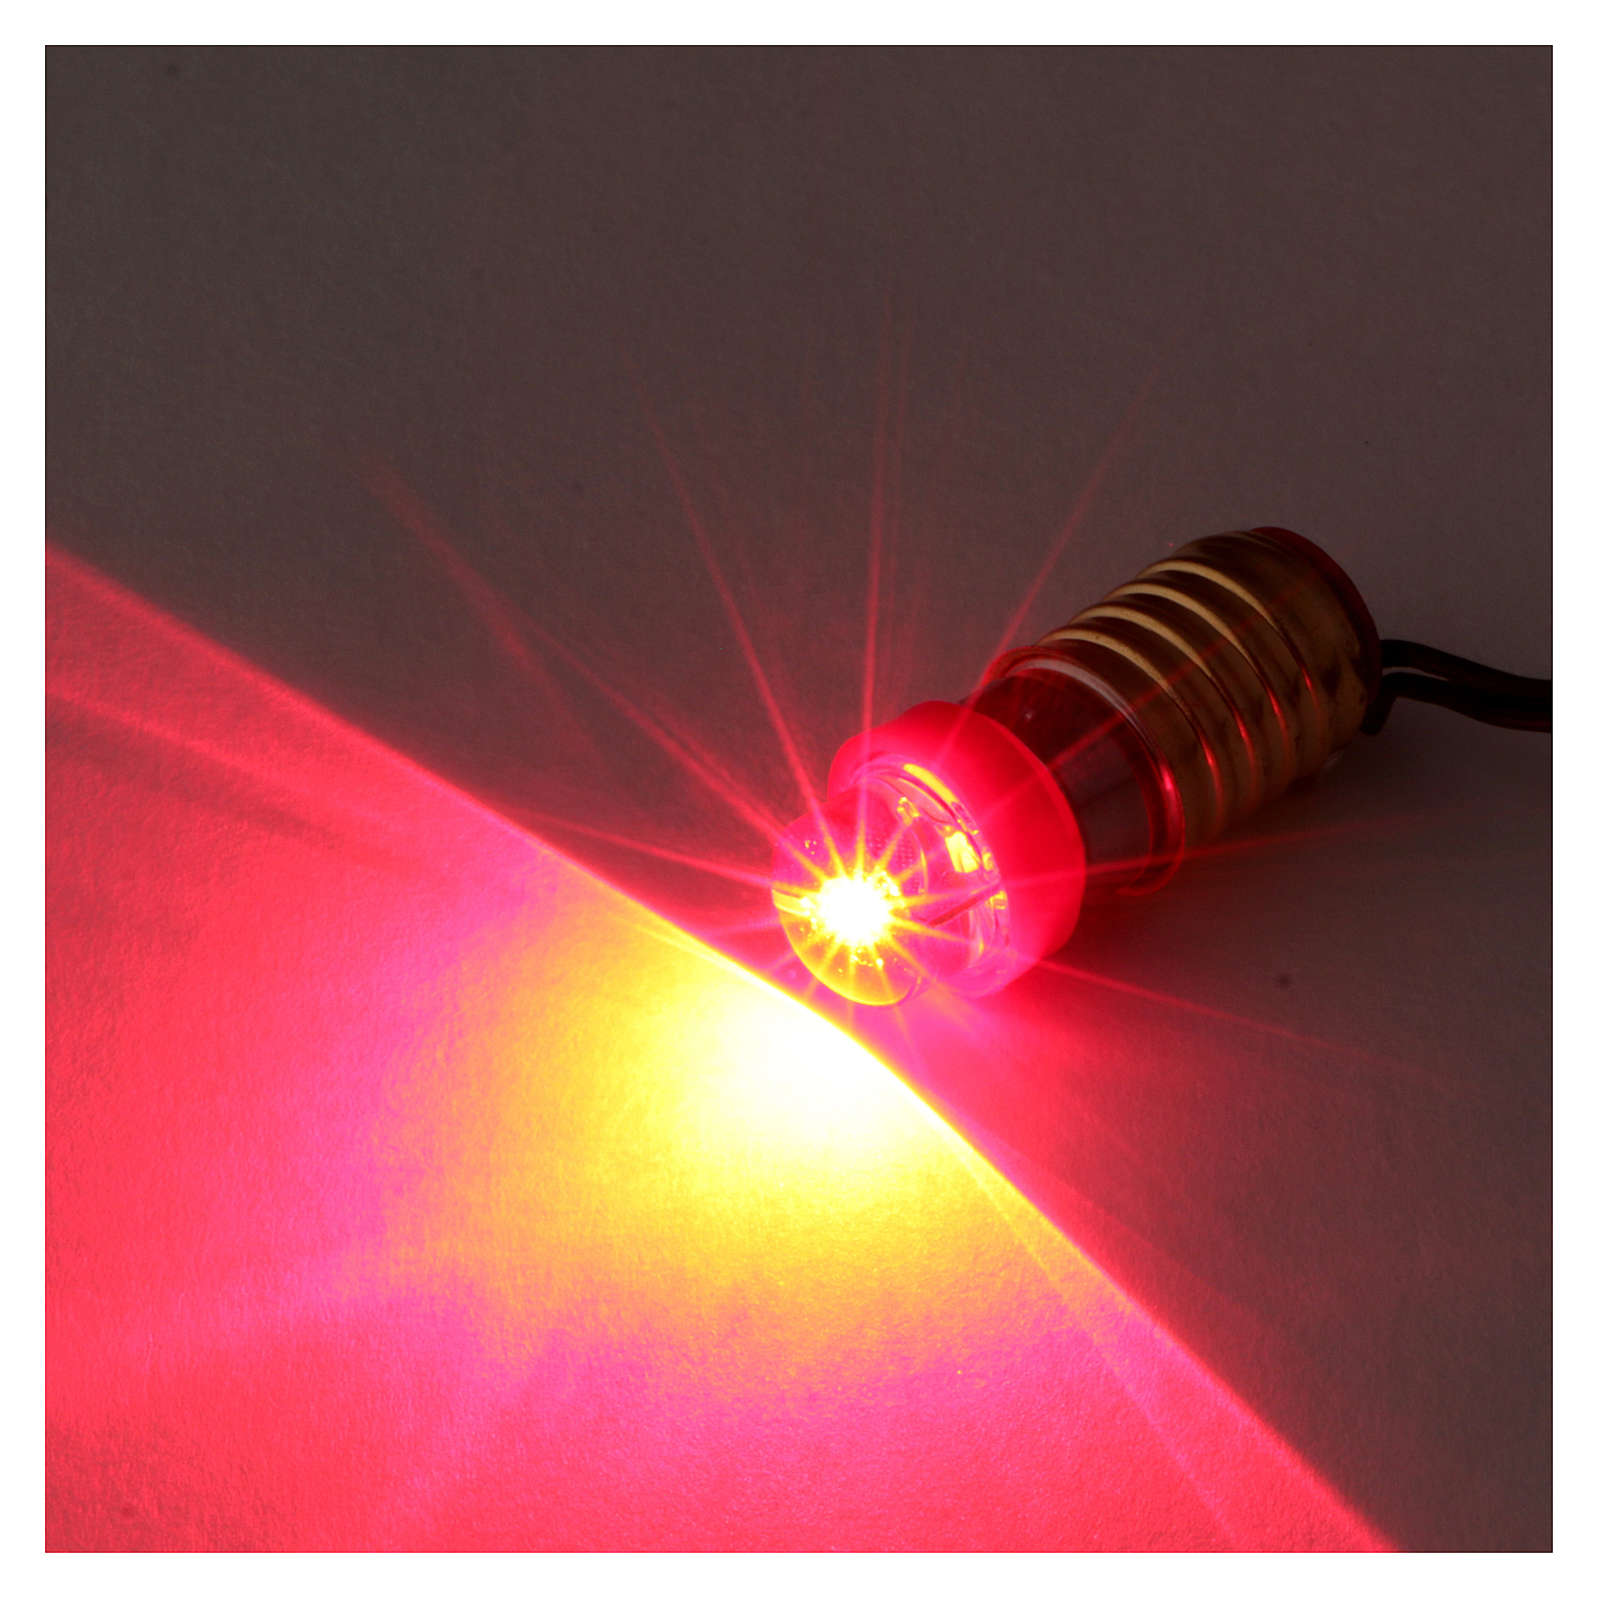 Red led light with low-voltage wiring 4